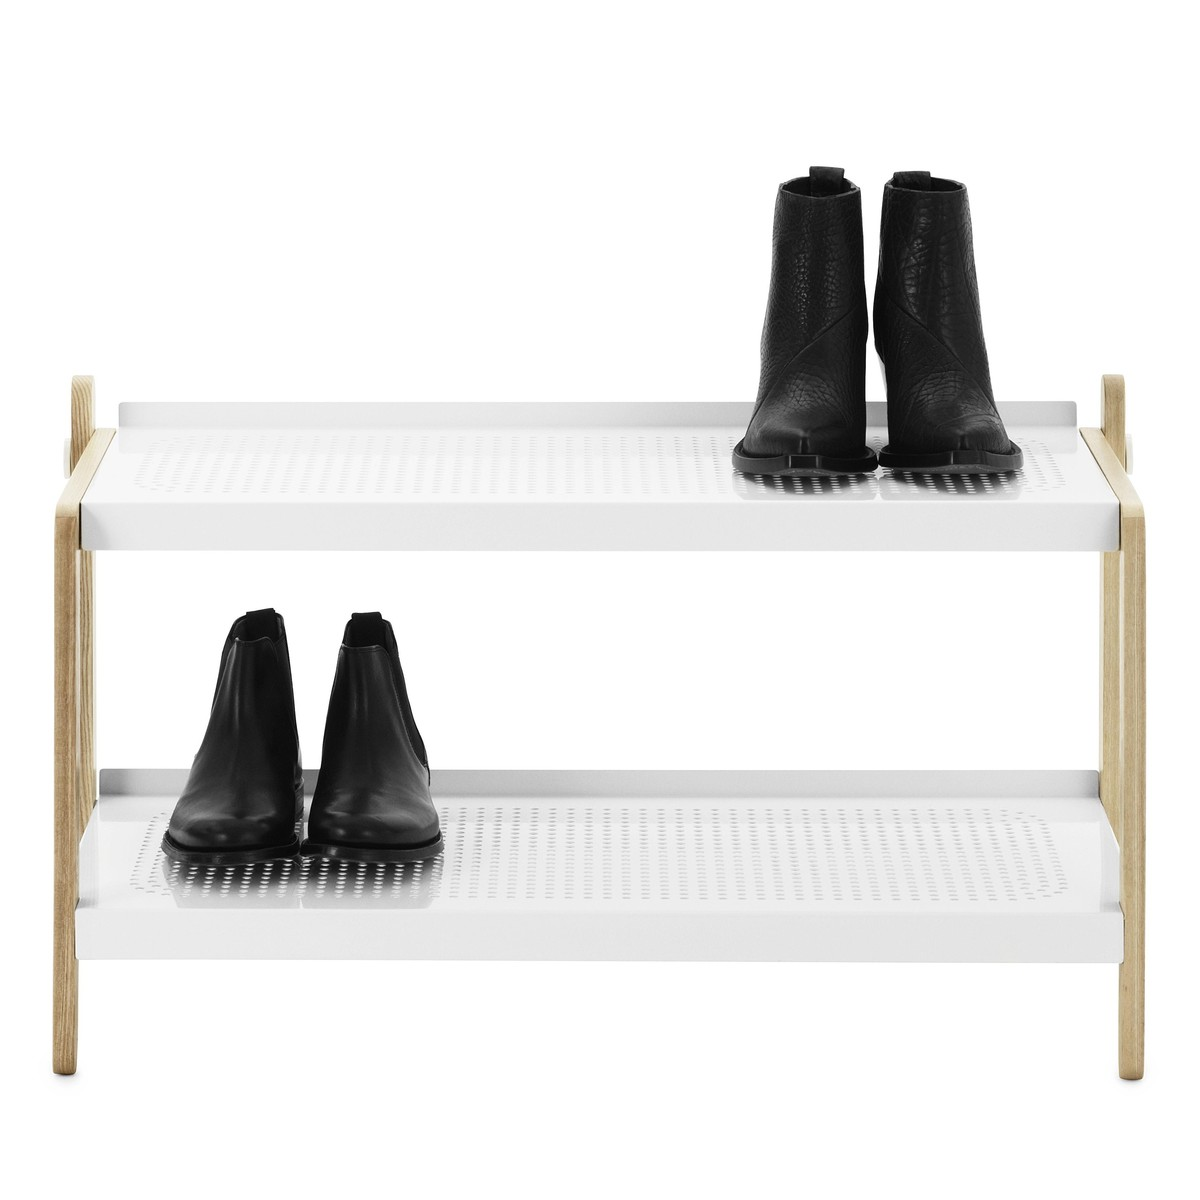 Sko schuhregal normann copenhagen for Schuhregal design